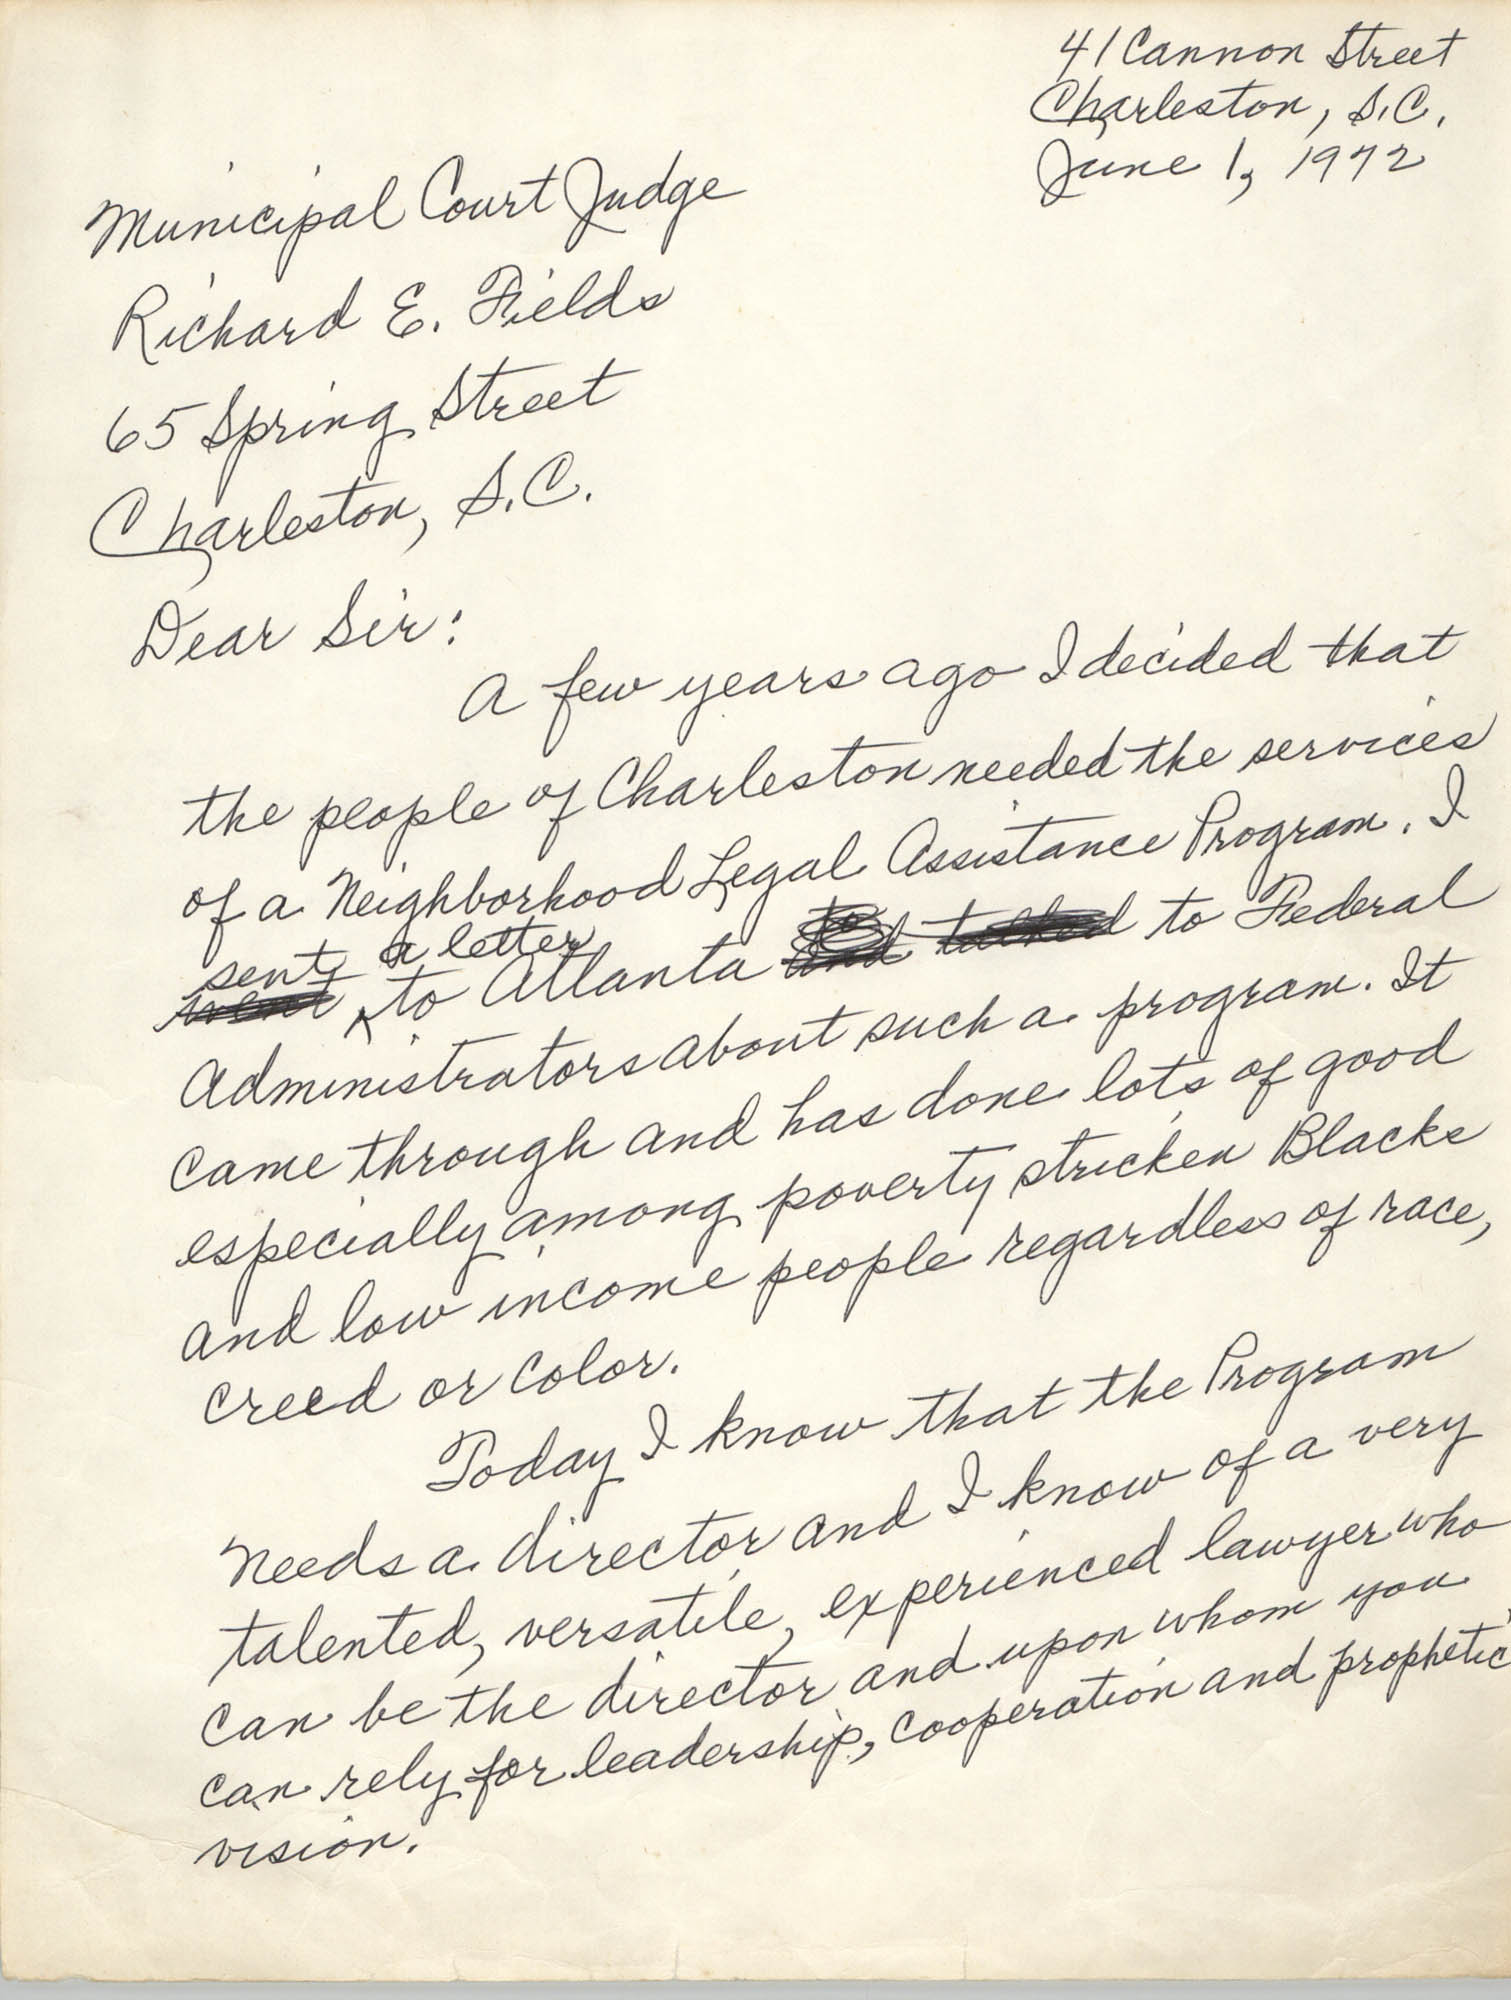 Letter Septima Clark and Esau Jenkins to Richard E. Fields, June 1, 1972